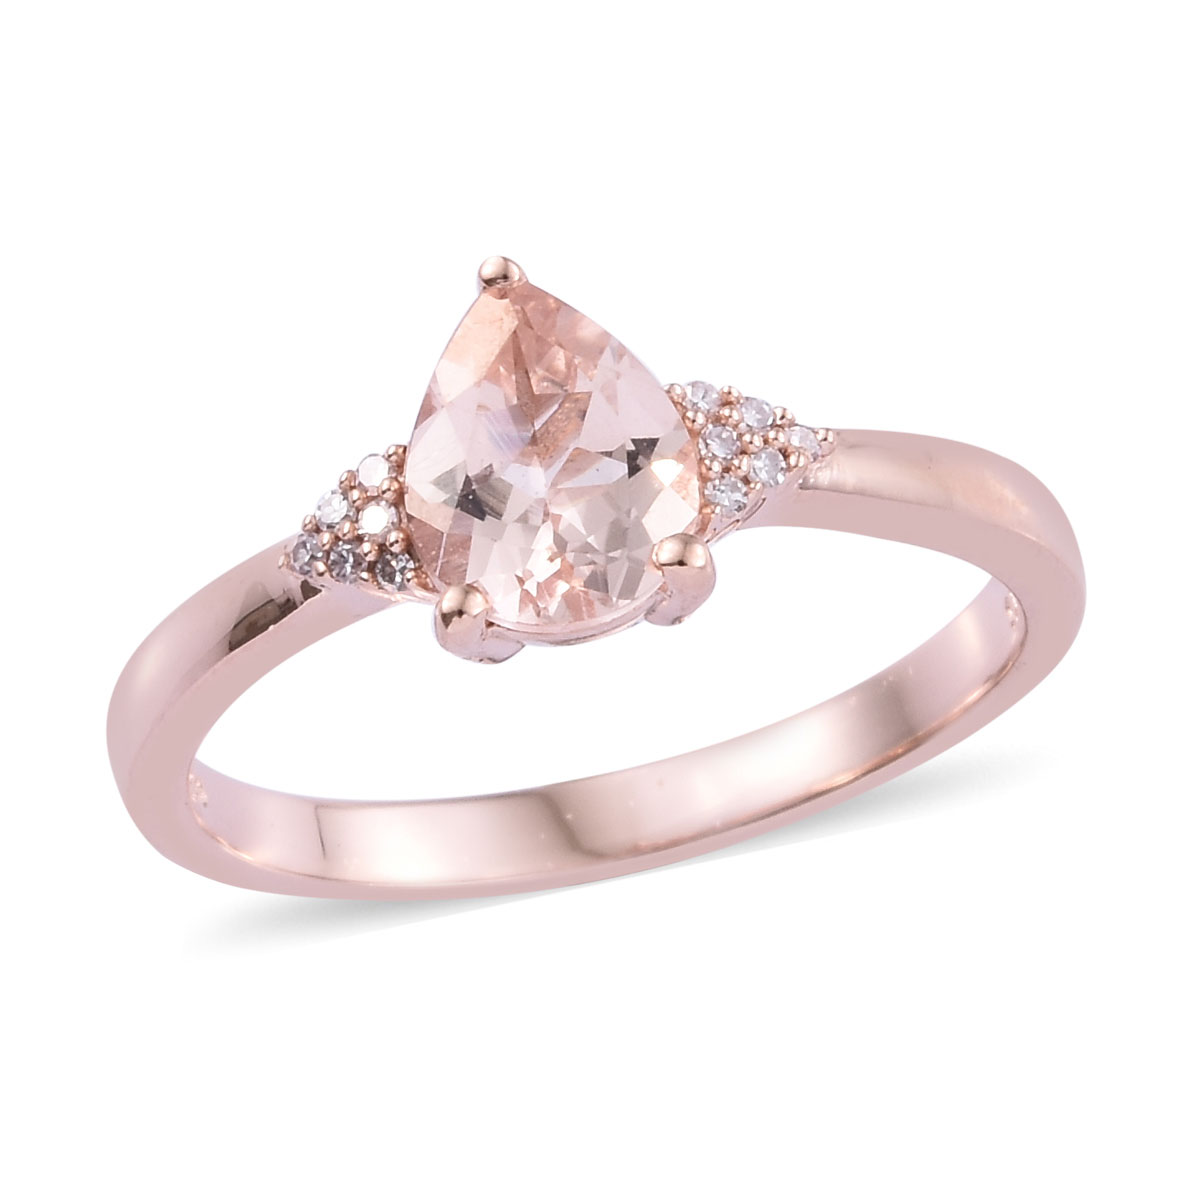 Marropino Morganite, Natural Pink Diamond (0.10 Ct) Ring in Vermeil RG Over Sterling Silver (Size 11.0) 1.55 ctw